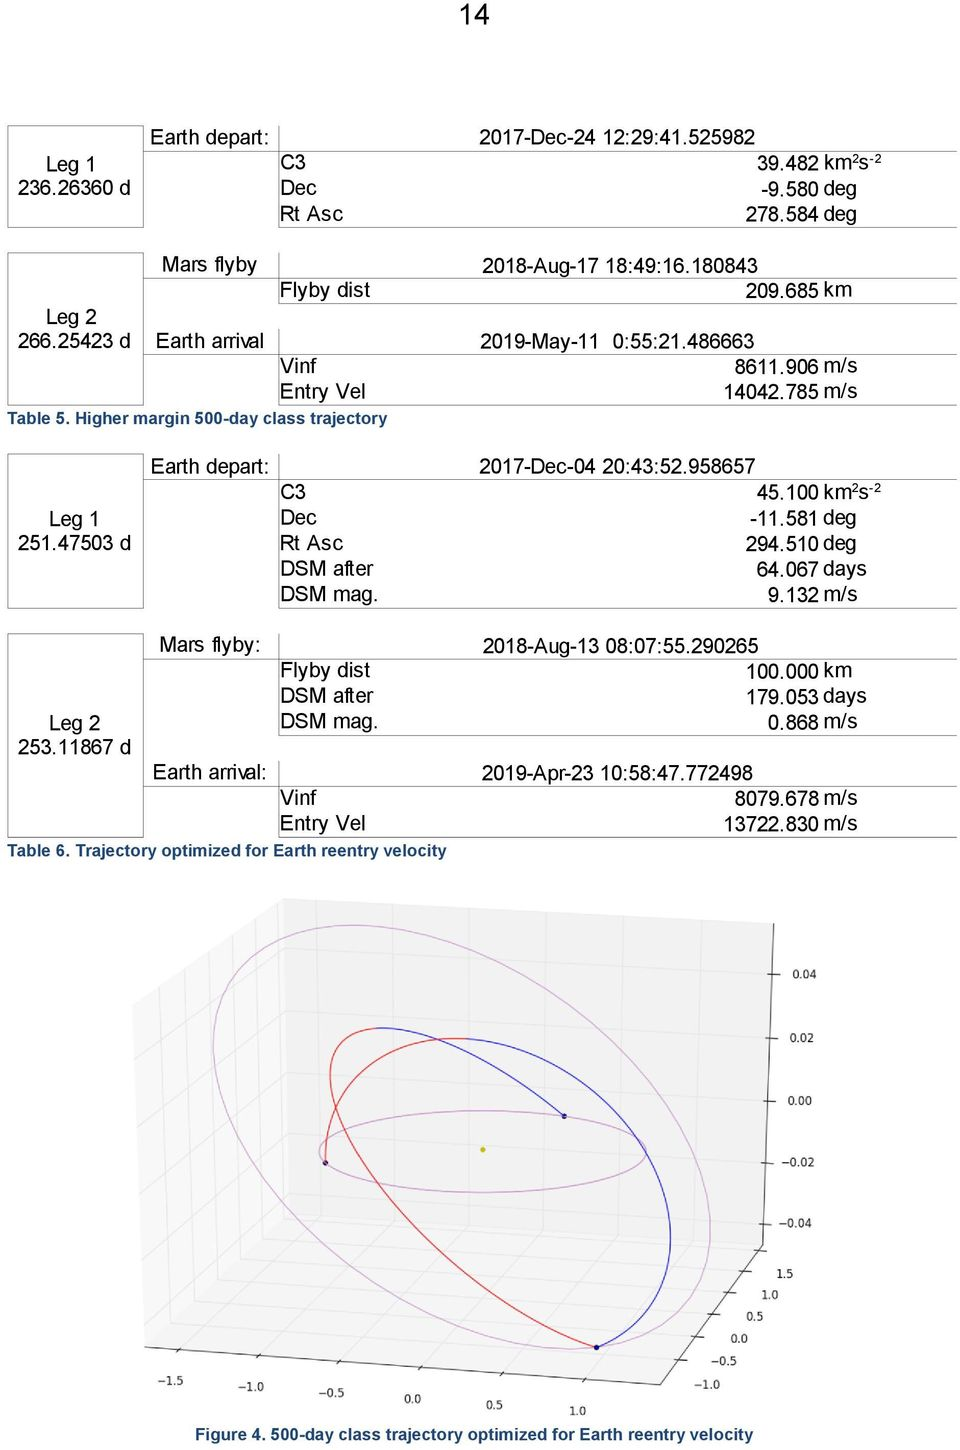 958657 C3 45.100 km 2 s -2 Dec Rt Asc -11.581 deg 294.510 deg DSM after 64.067 days DSM mag. 9.132 m/s Leg 2 253.11867 d Mars flyby: 2018-Aug-13 08:07:55.290265 Flyby dist 100.000 km DSM after 179.